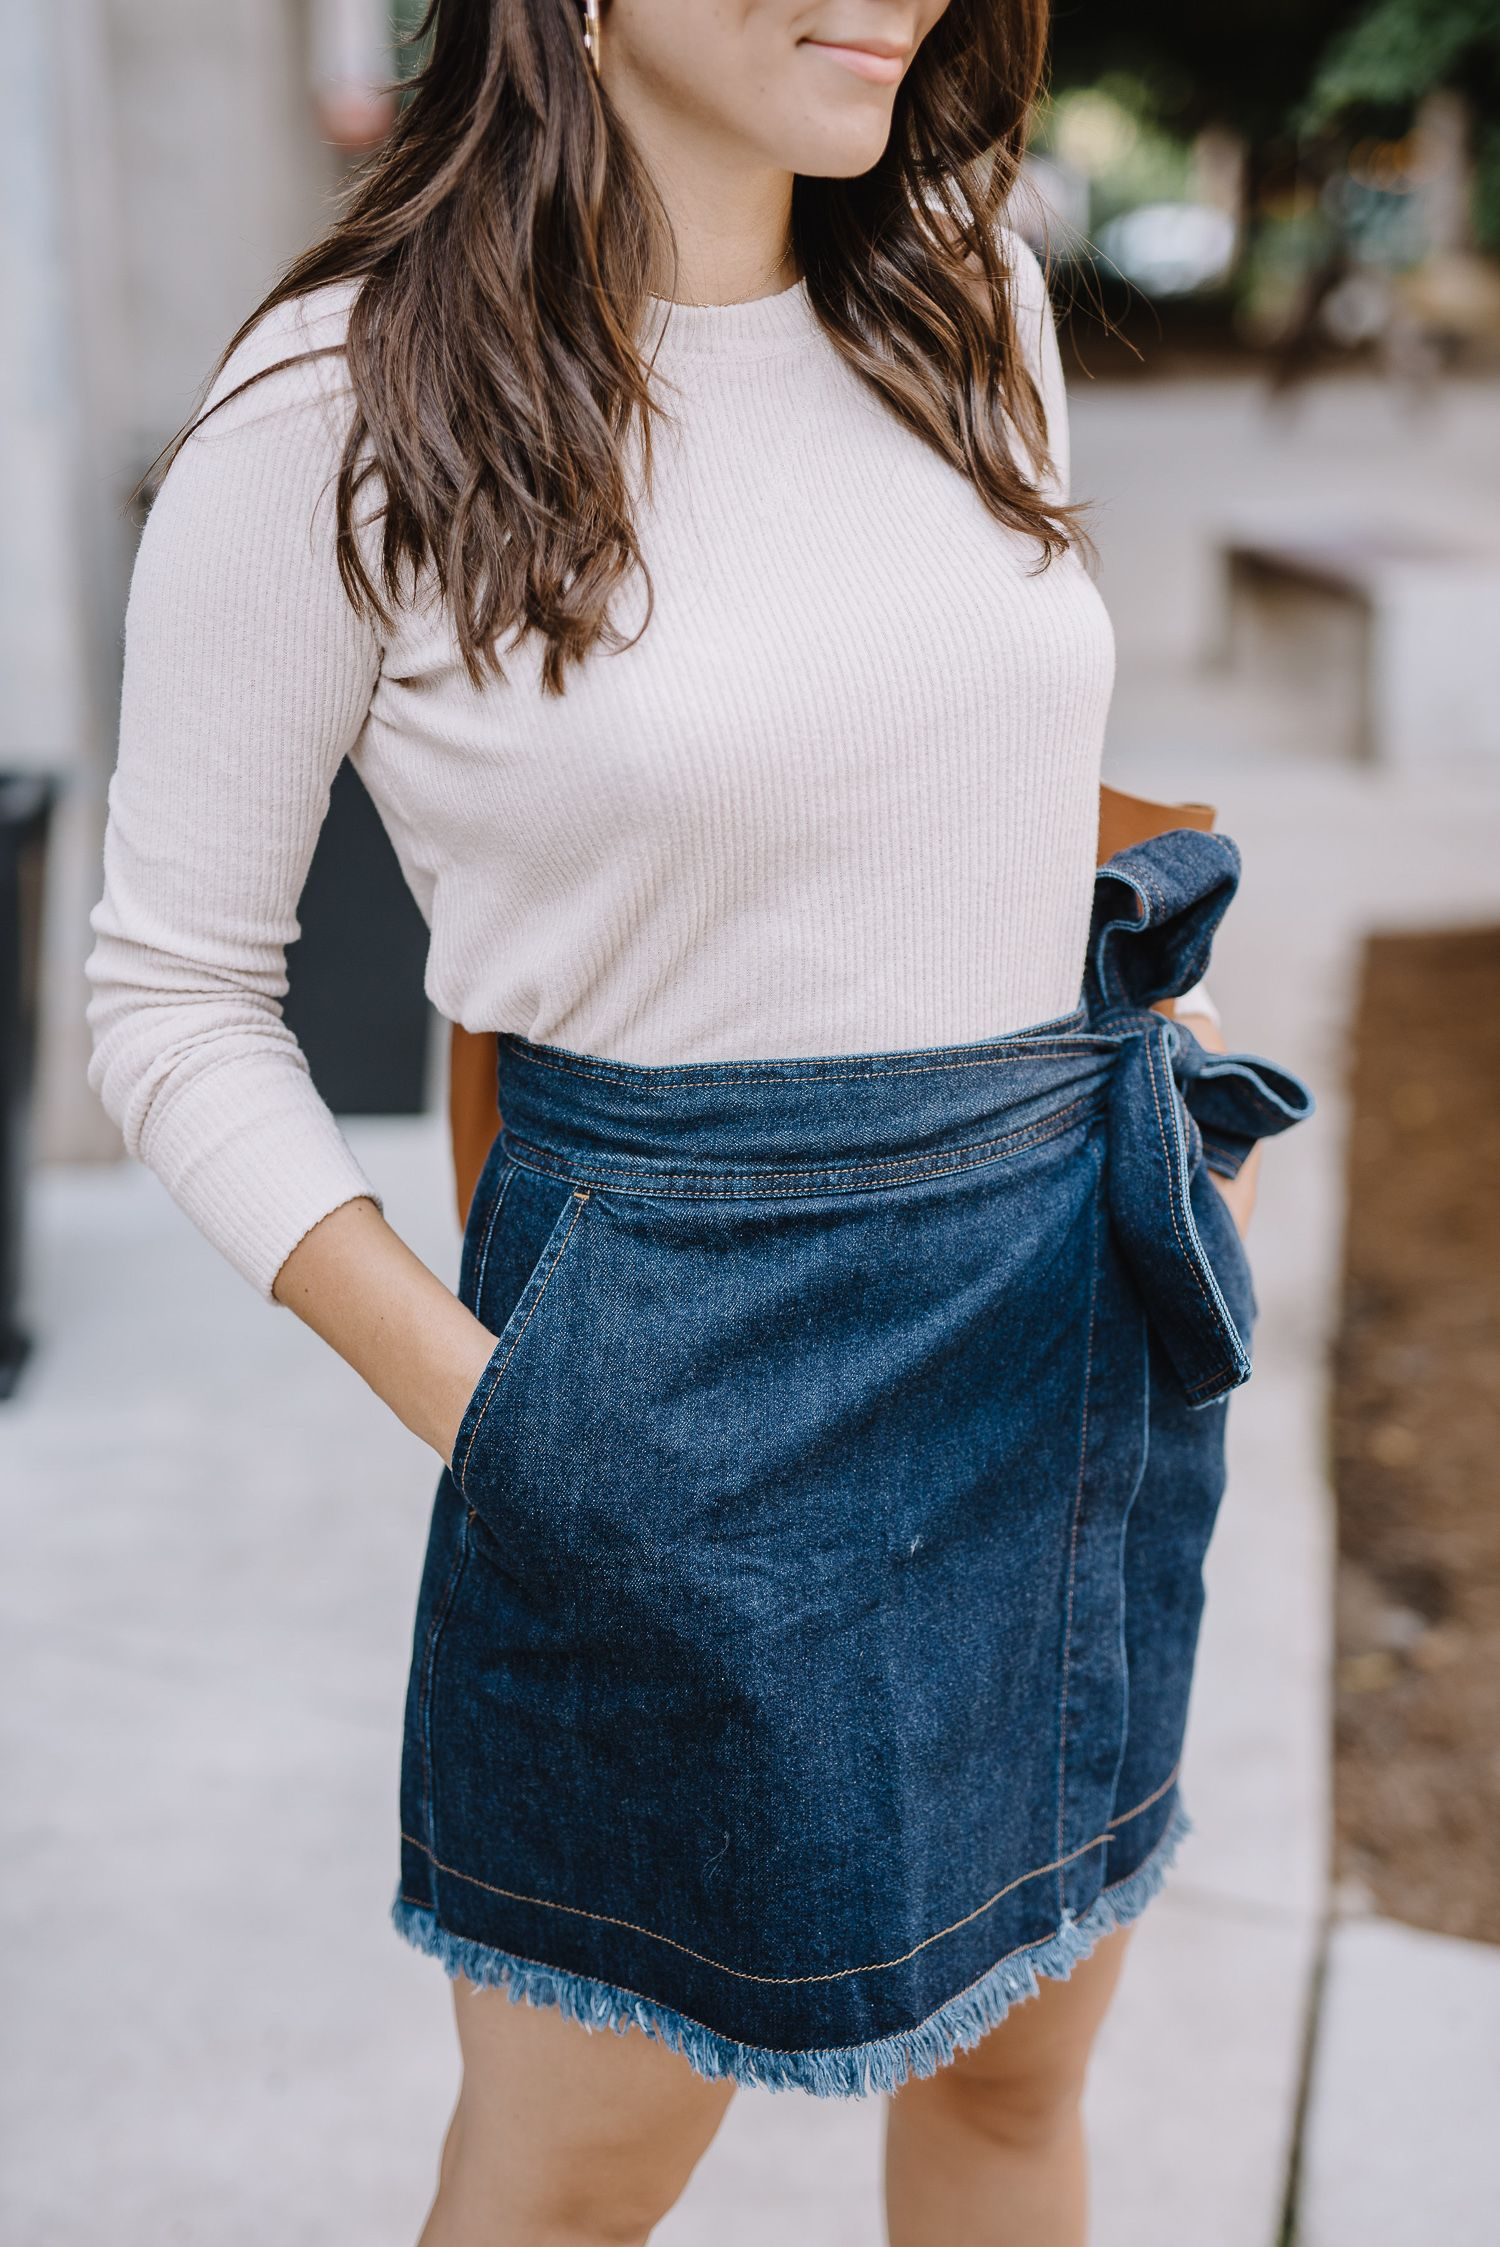 4b1317f18 A Wrap Denim Mini Skirt Styled For Summer And Fall | How to Transition Your Denim  Skirt into Fall